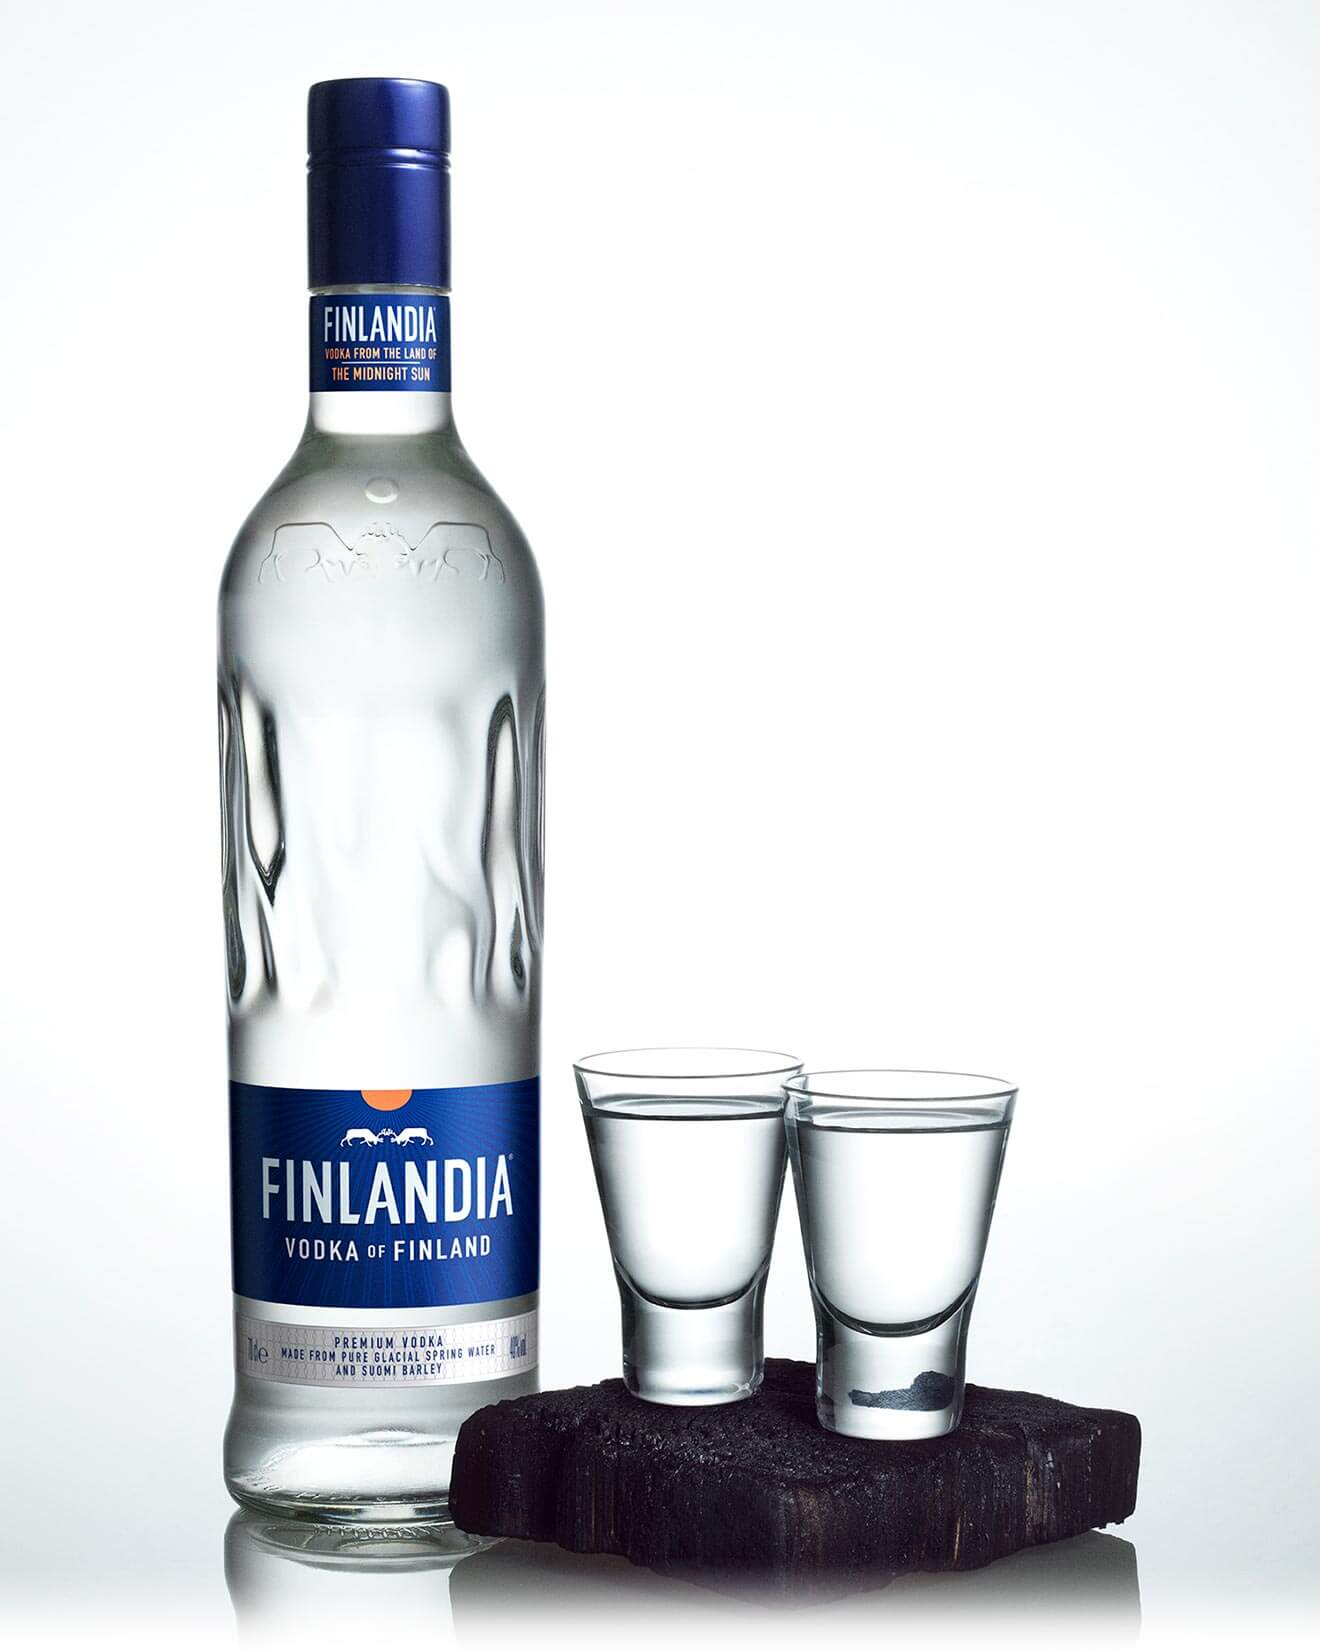 Finlandia New Package, bottle and shots on white